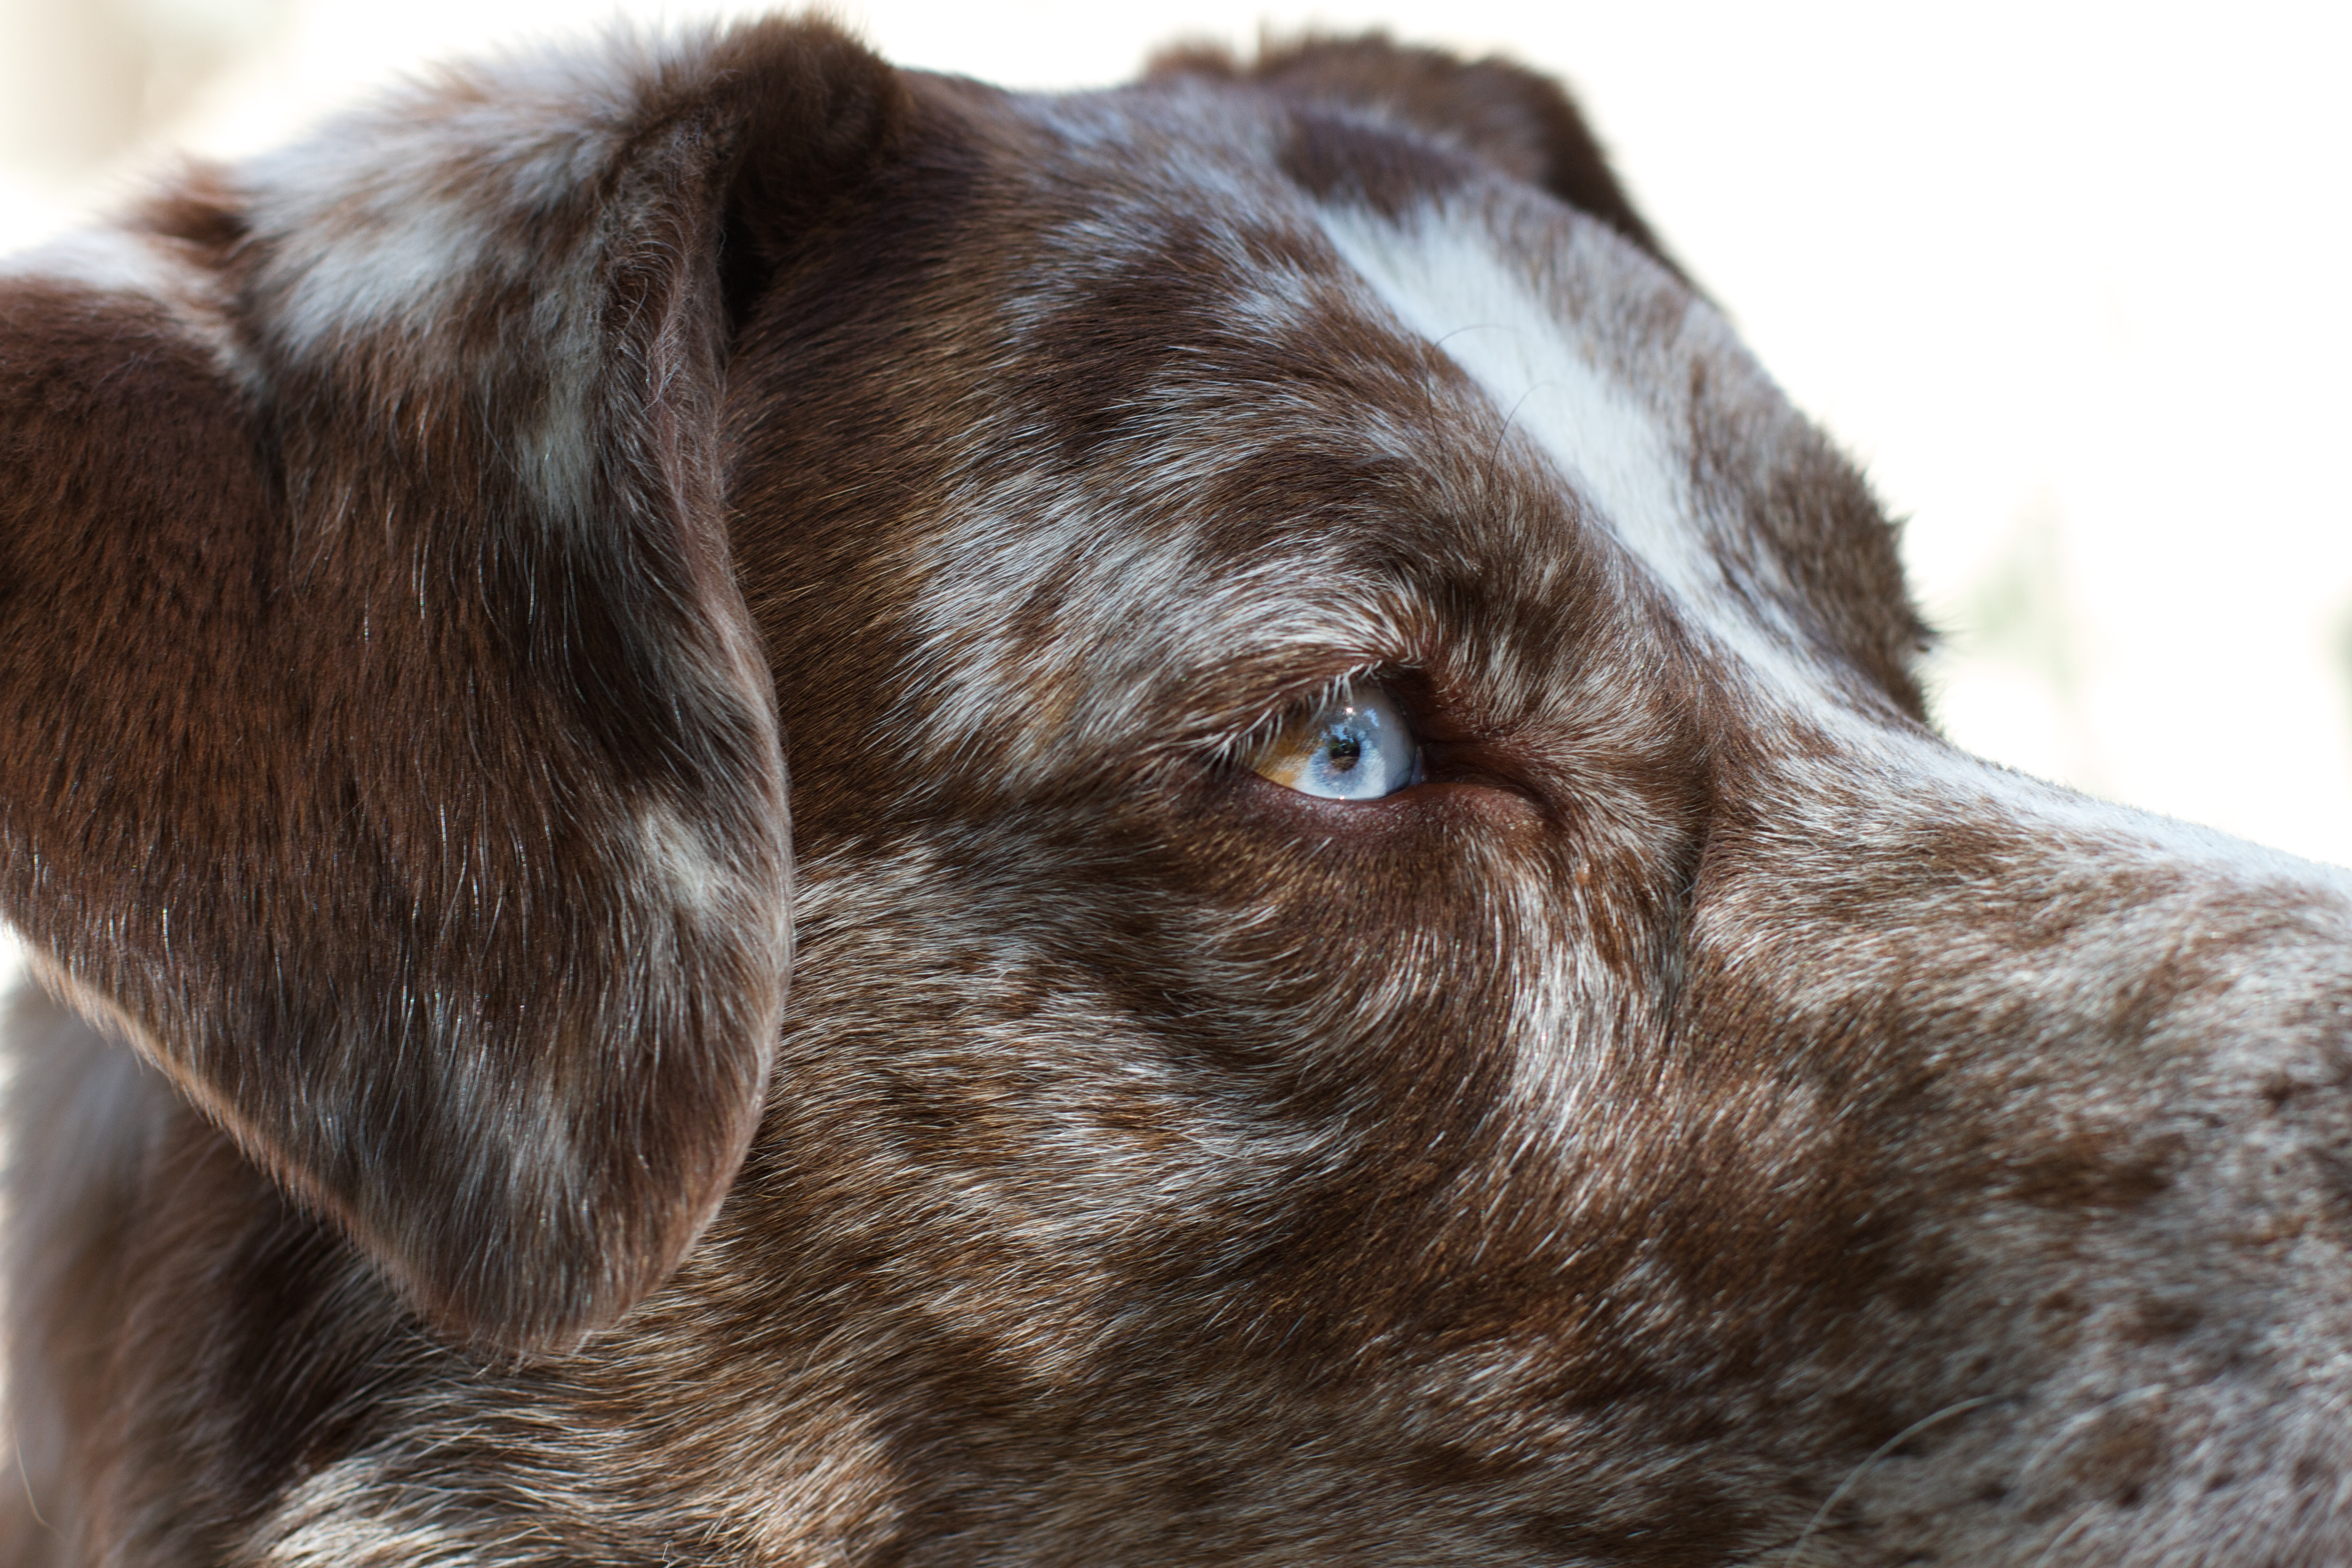 Mr blue (and brown) eye photo